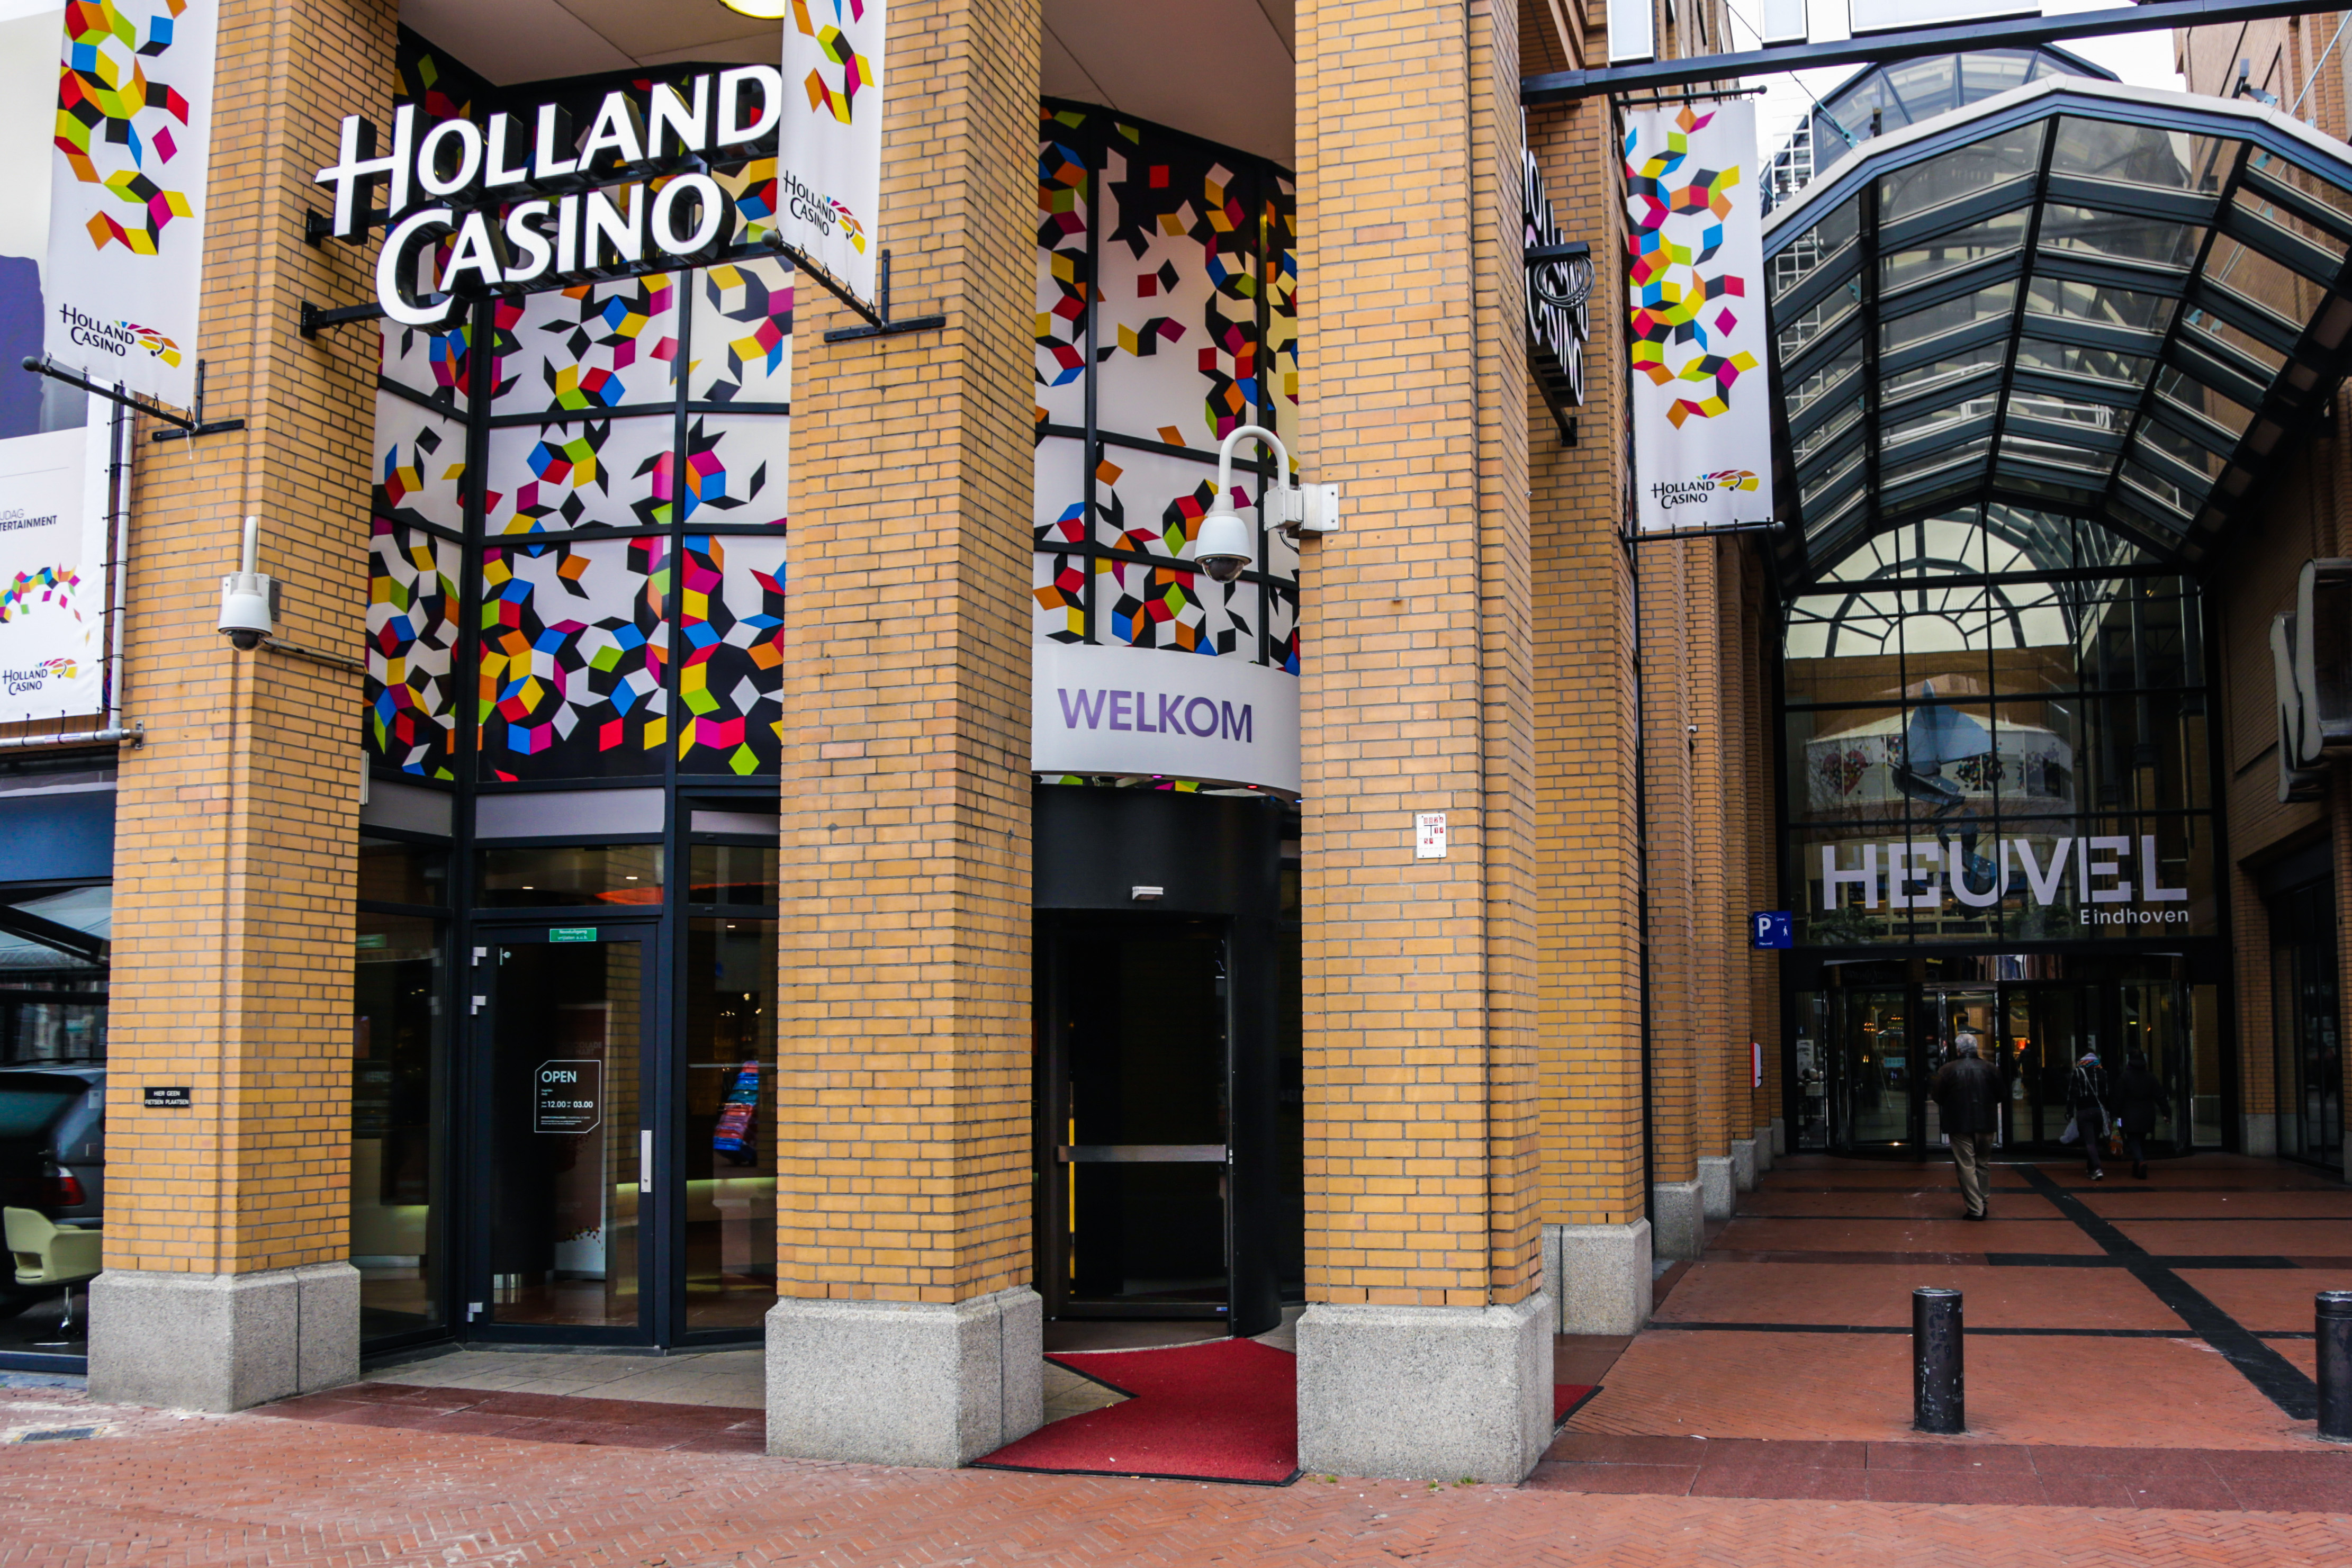 Pokertoernooi Holland Casino